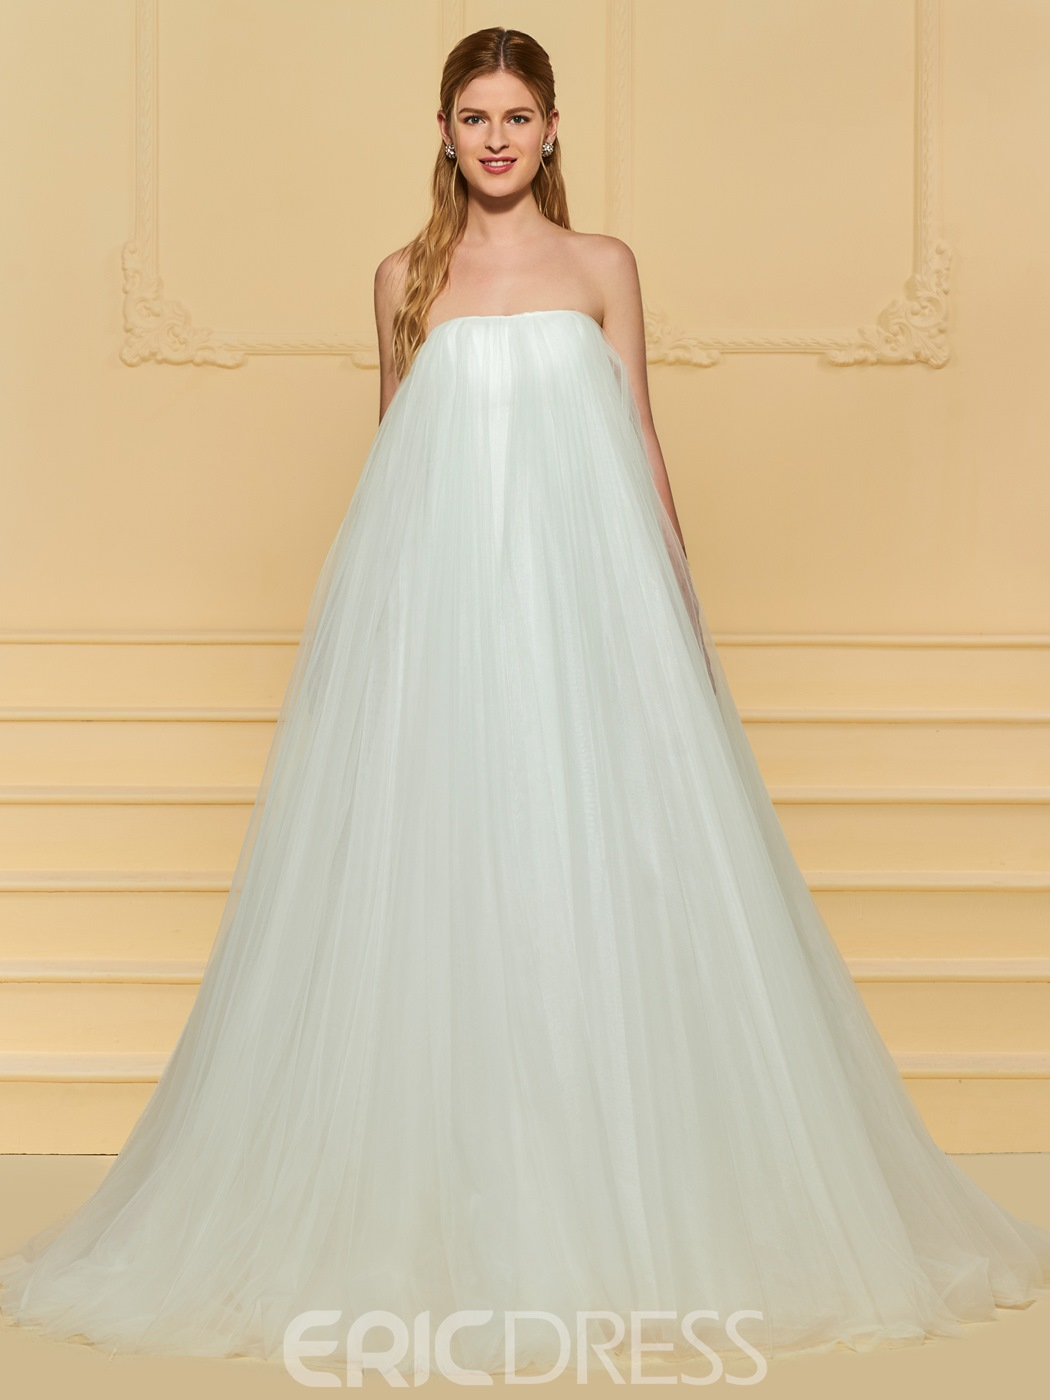 Ericdress Strapless Tulle A Line Wedding Dress 13172383 - Ericdress.com